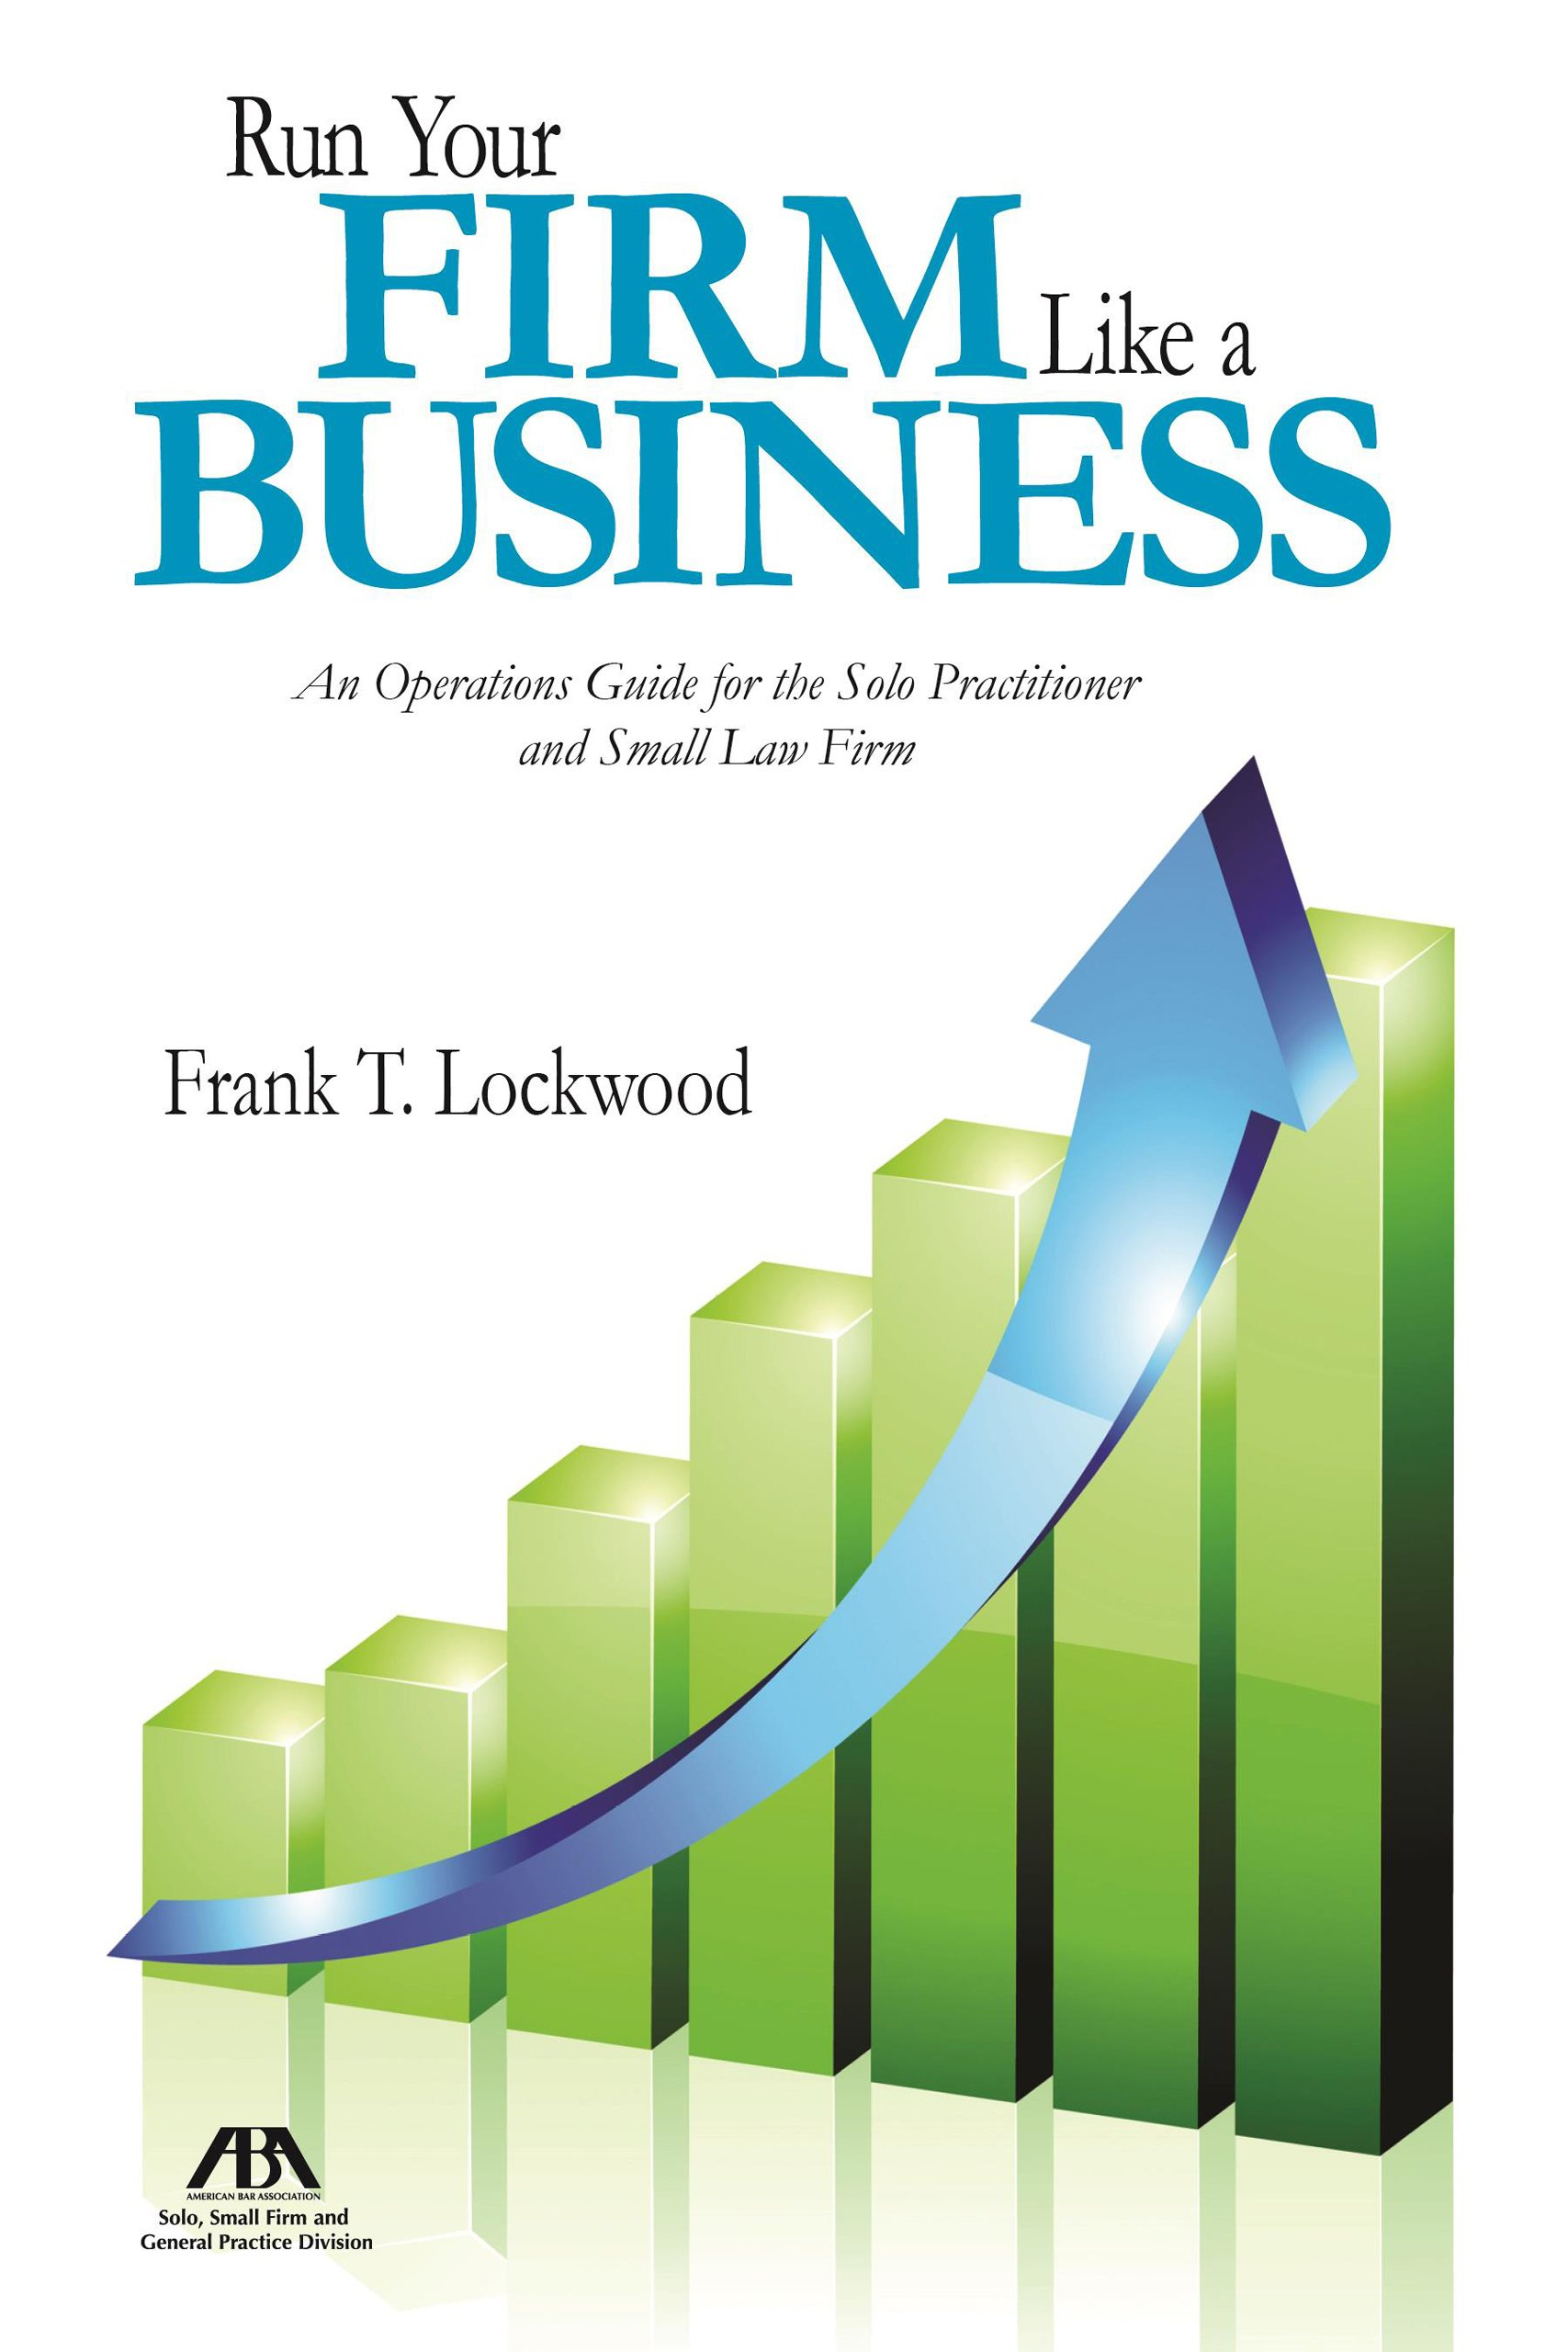 Amazon.com: Run Your Firm Like a Business: An Operational Guide for the Solo  Practitioner and Small Law Firm (9781627222228): Frank T. Lockwood: Books